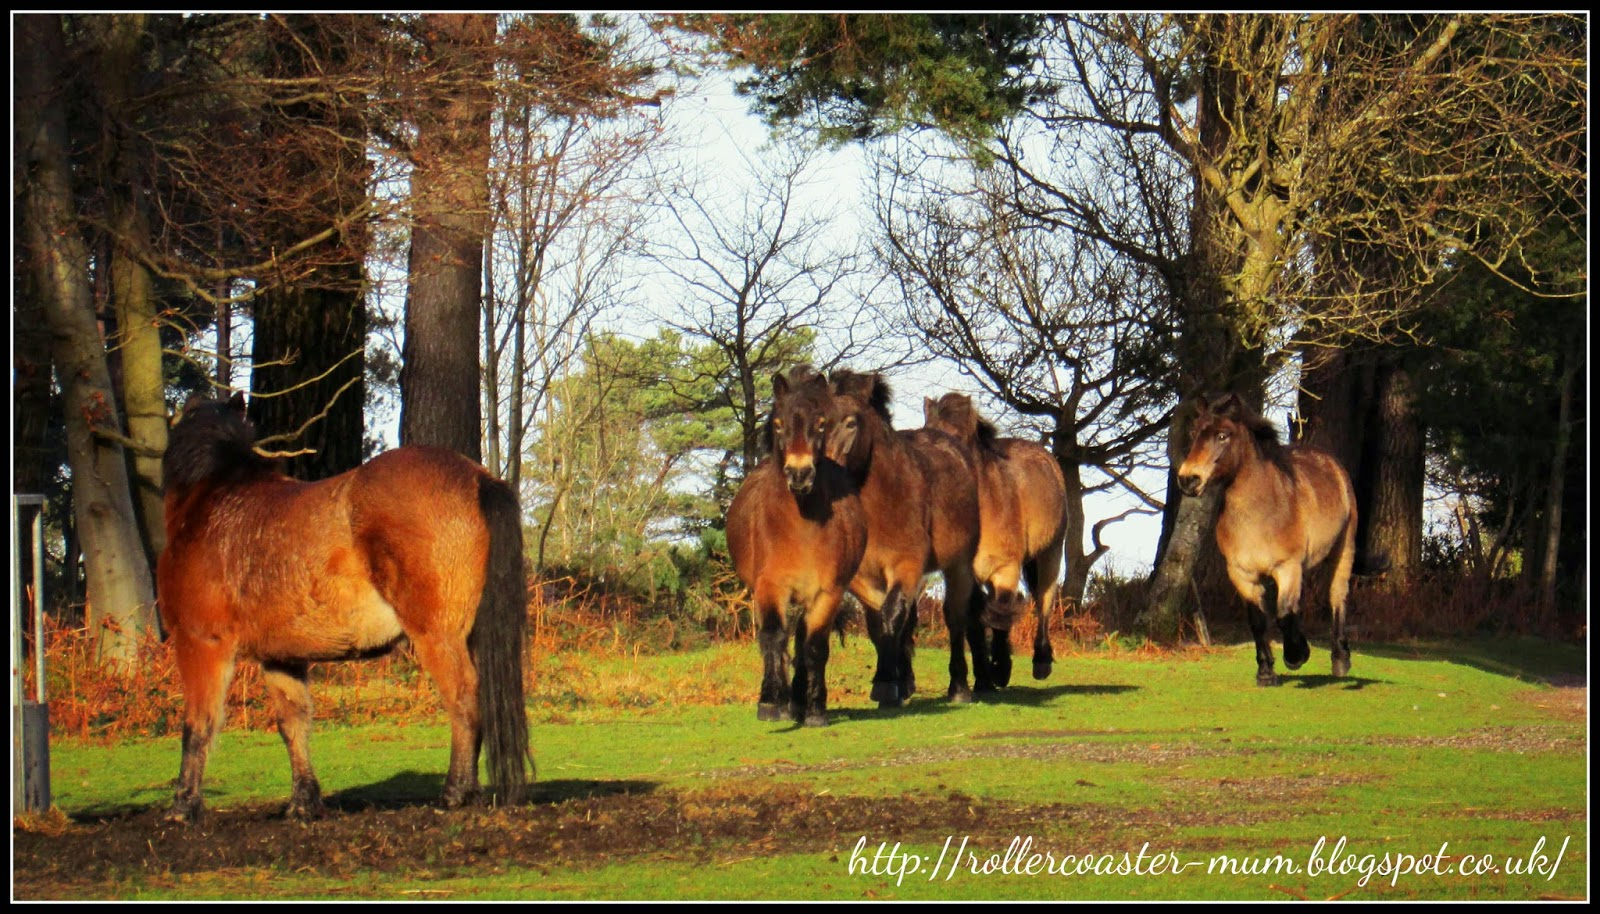 herd of Exmoor ponies, National Trust Devil's Punch Bowl, Surrey Hills